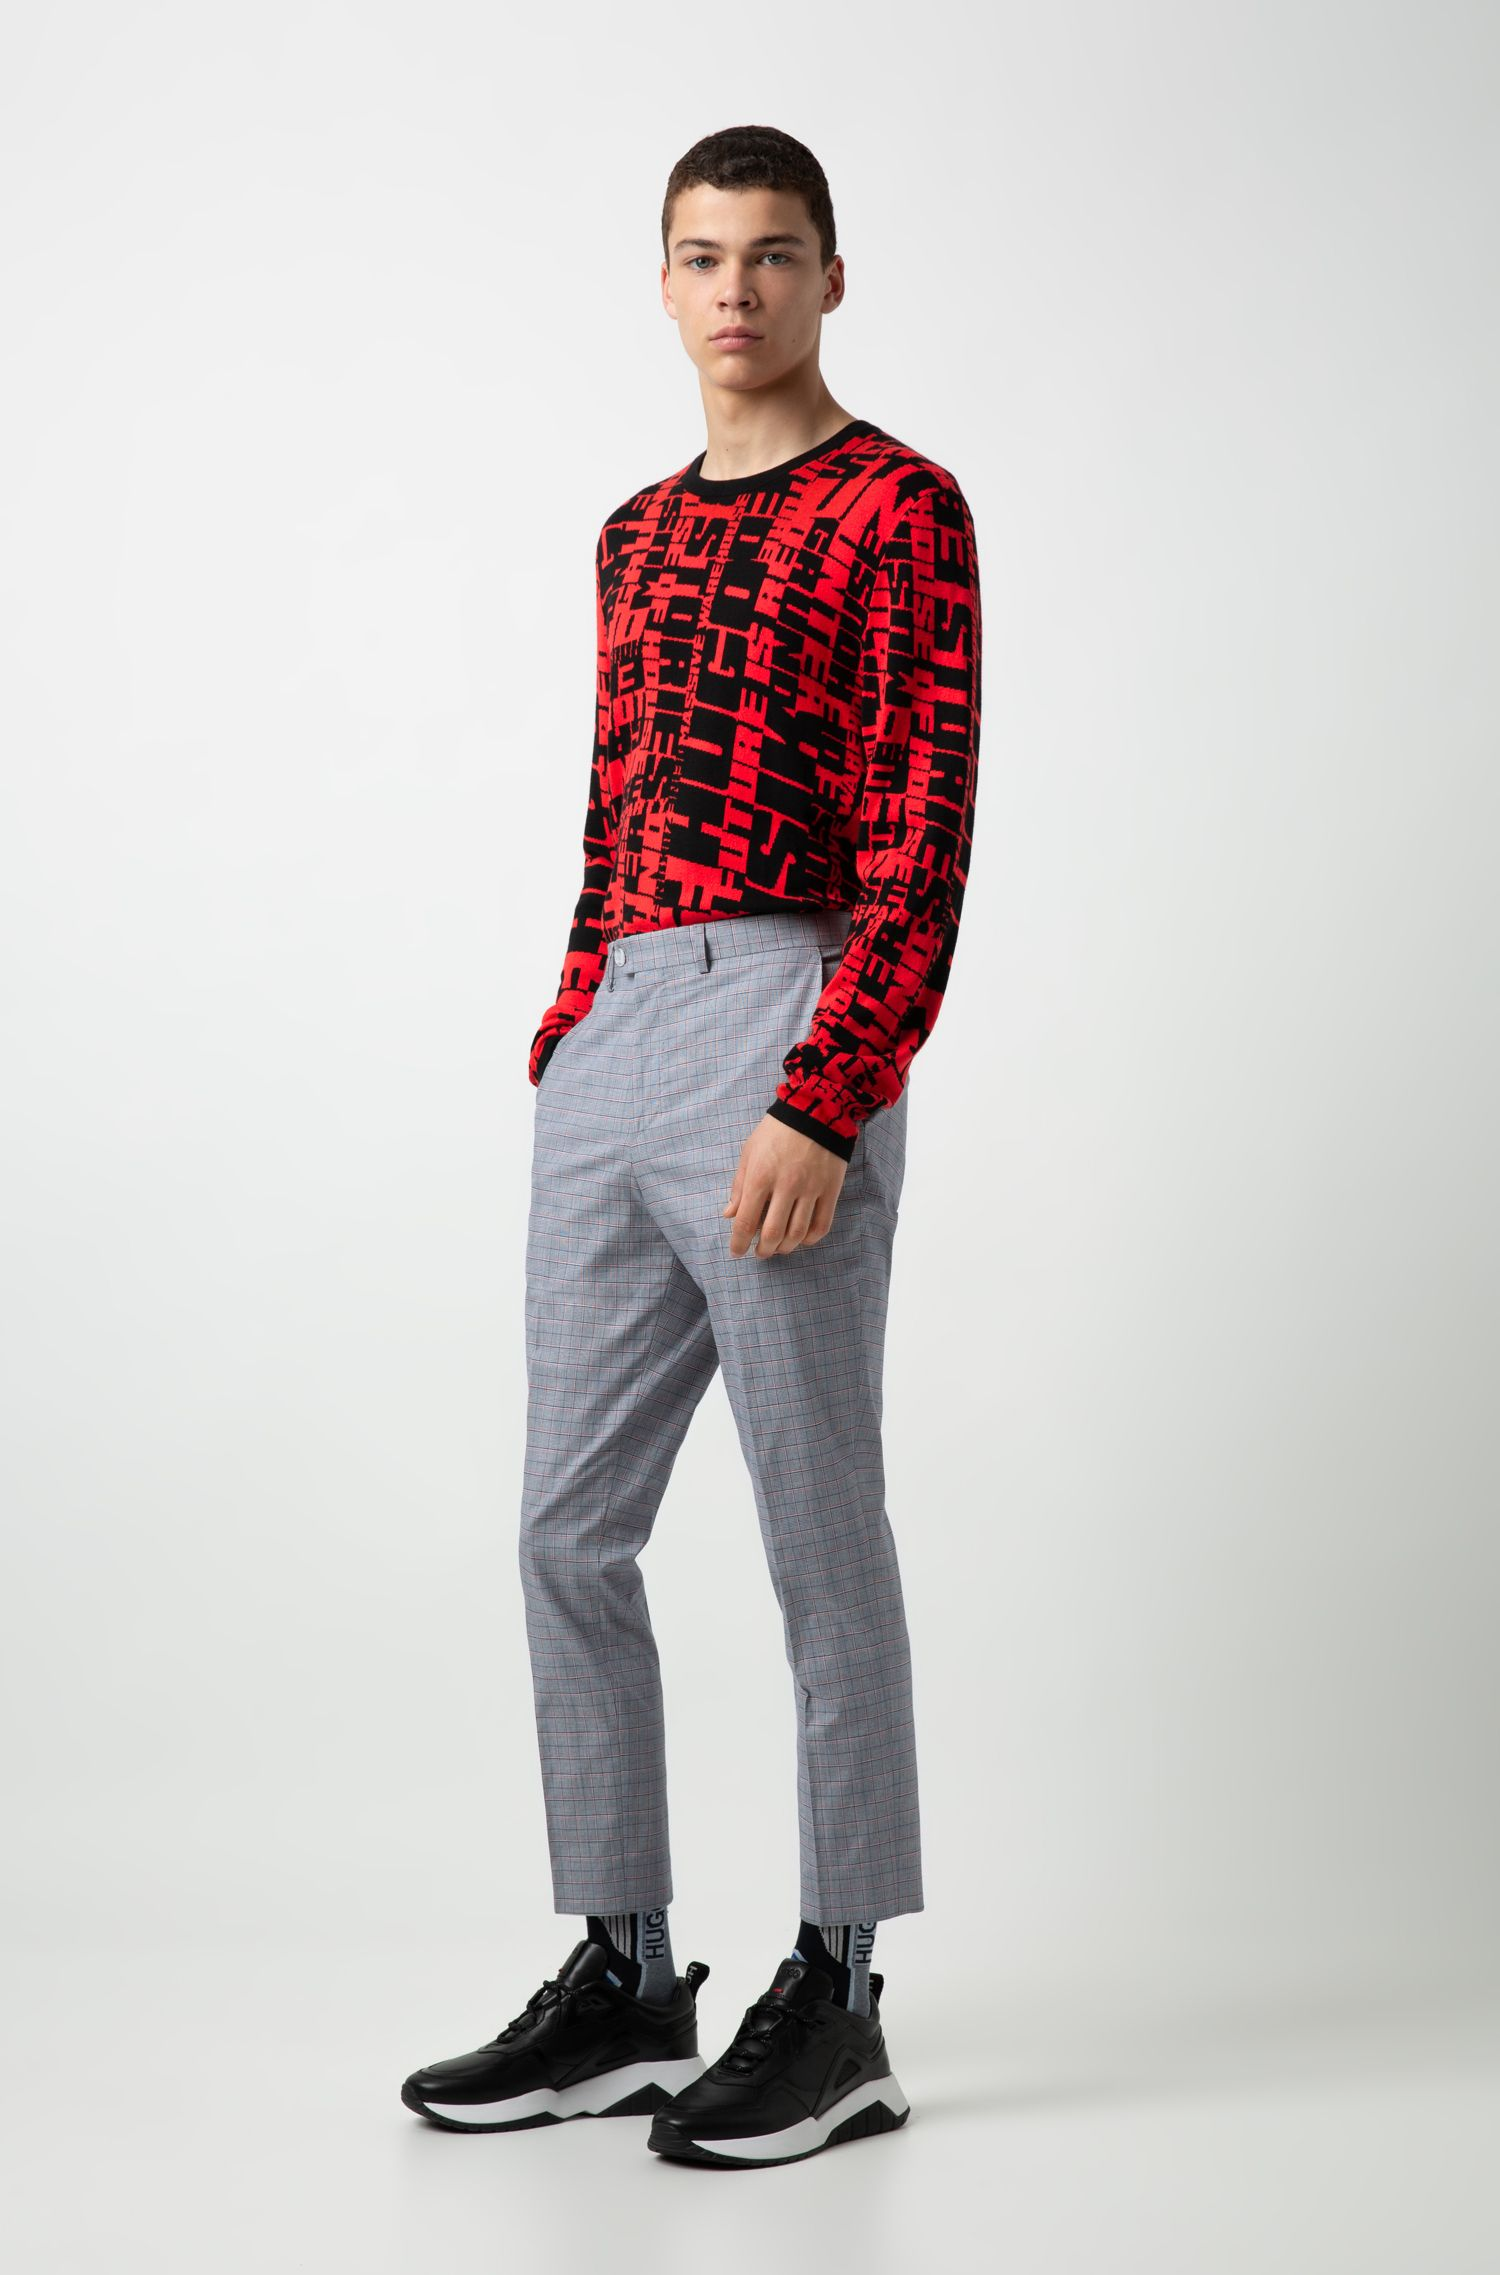 Collection-slogan patterned sweater in cotton-blend knitted jacquard, Patterned